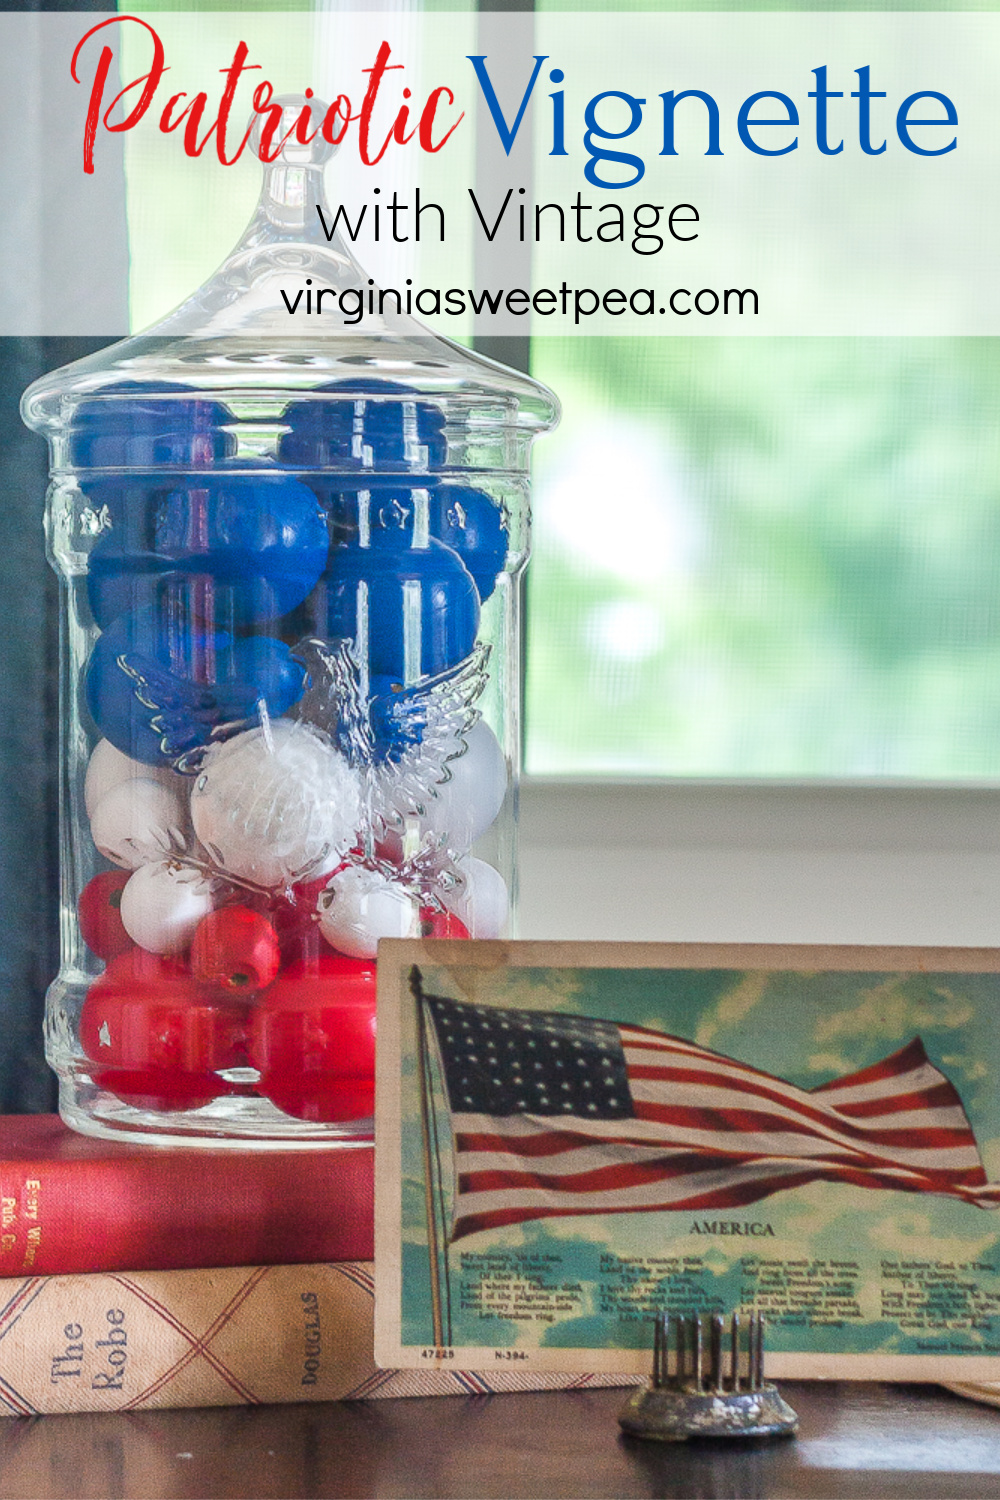 Patriotic Vignette with Vintage - See how to create a patriotic vignette with vintage and learn how to make red, white and blue filler to use in glass containers or in bowls for patriotic holidays. #patriotic #patrioticdecor #patrioticvignette #July4decor #4thofjuly #4thofjulydecor #4thofjulyvignette #diybowlfiller via @spaula